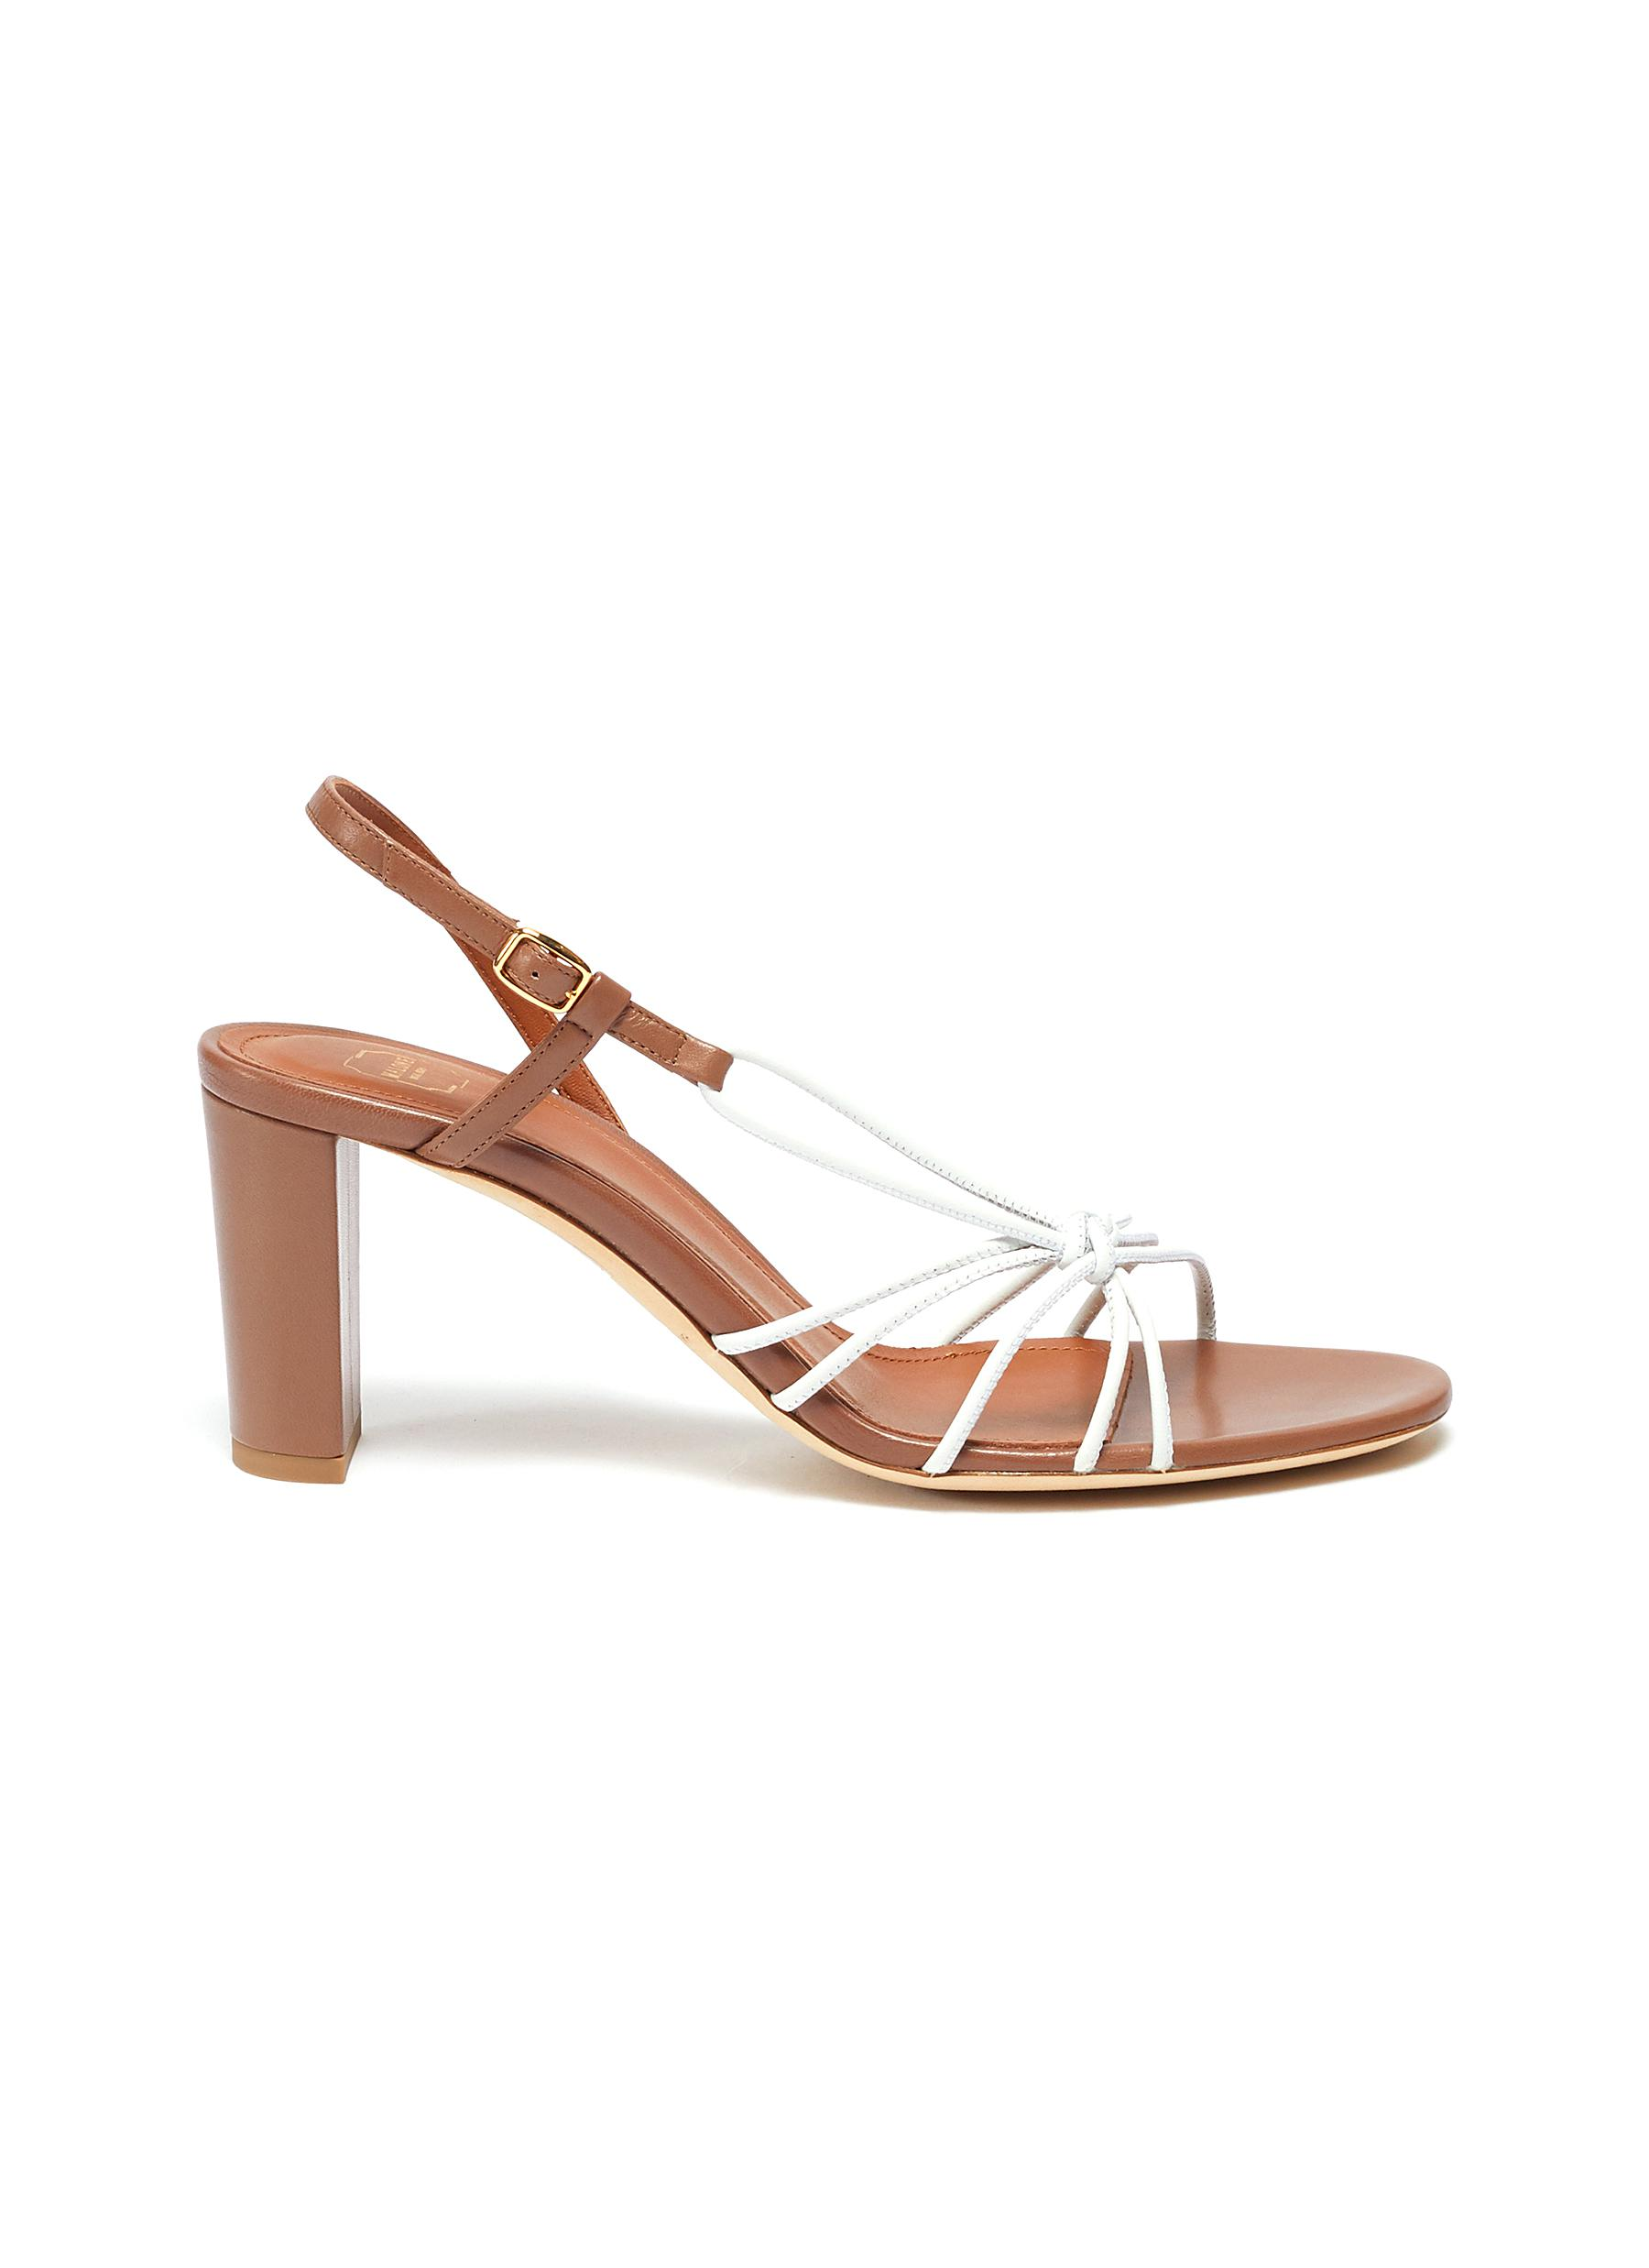 Binette knotted strappy slingback leather sandals by Malone Souliers